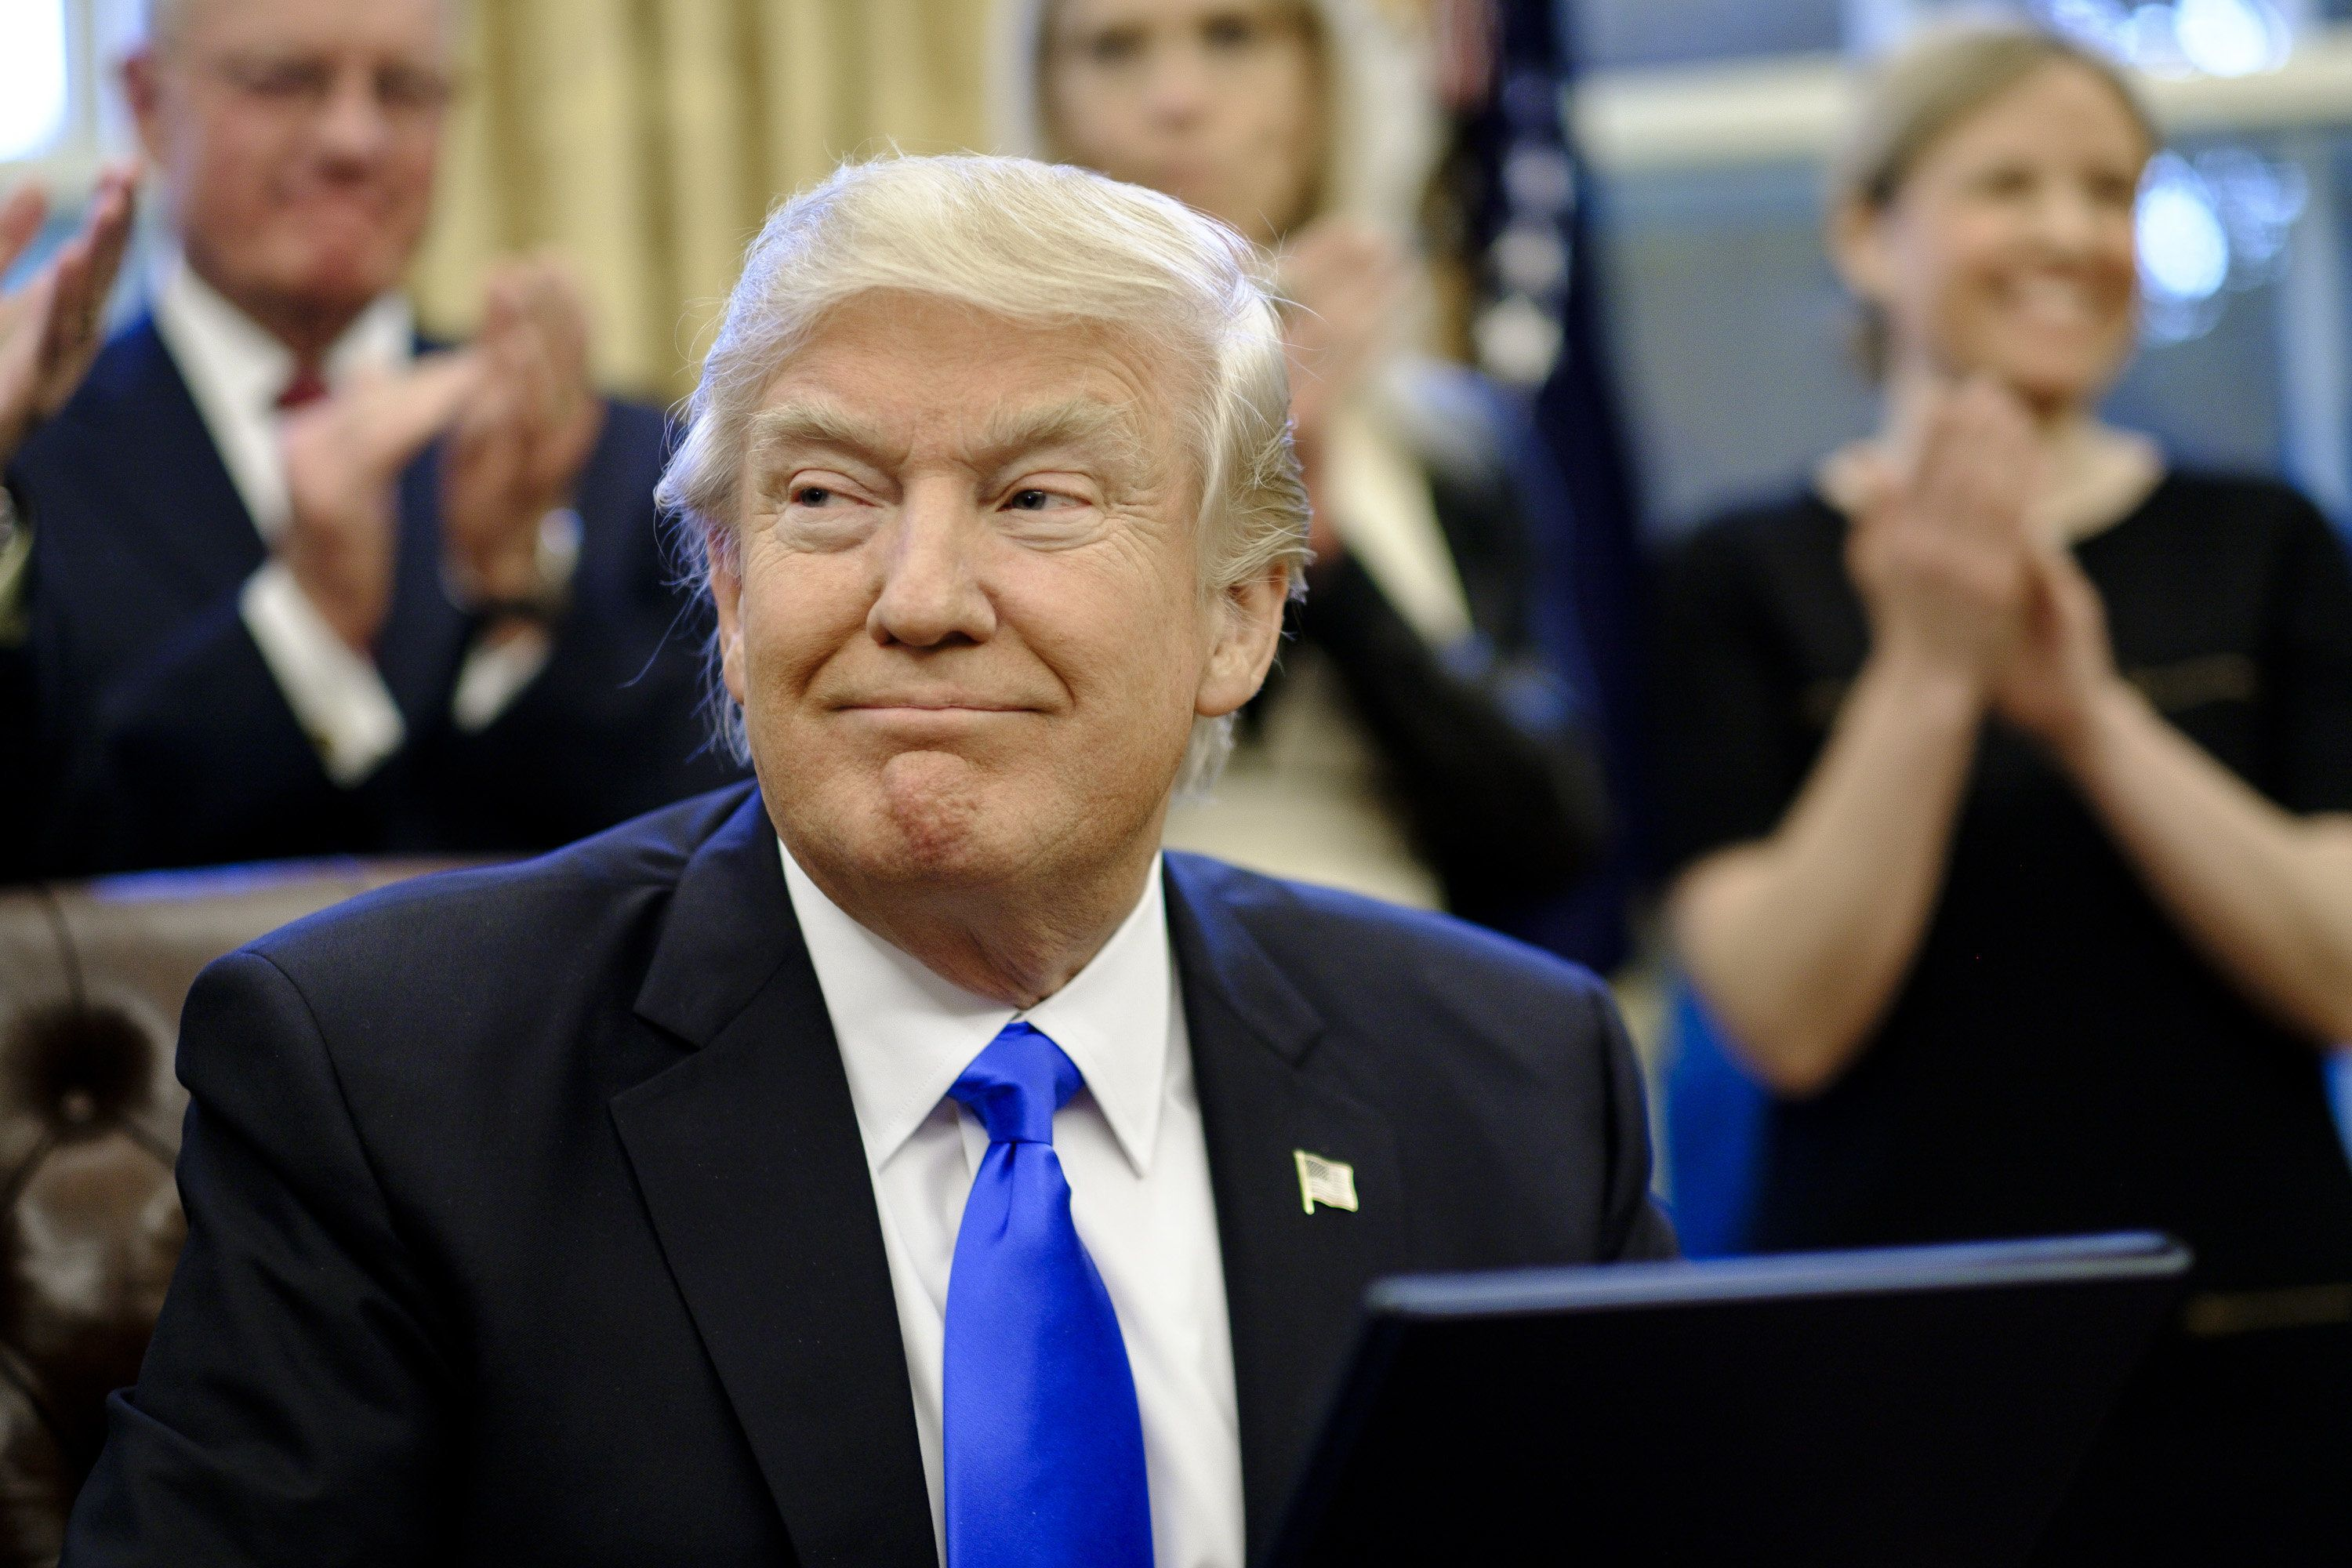 Trump Inches The U.S. Closer To Constitutional